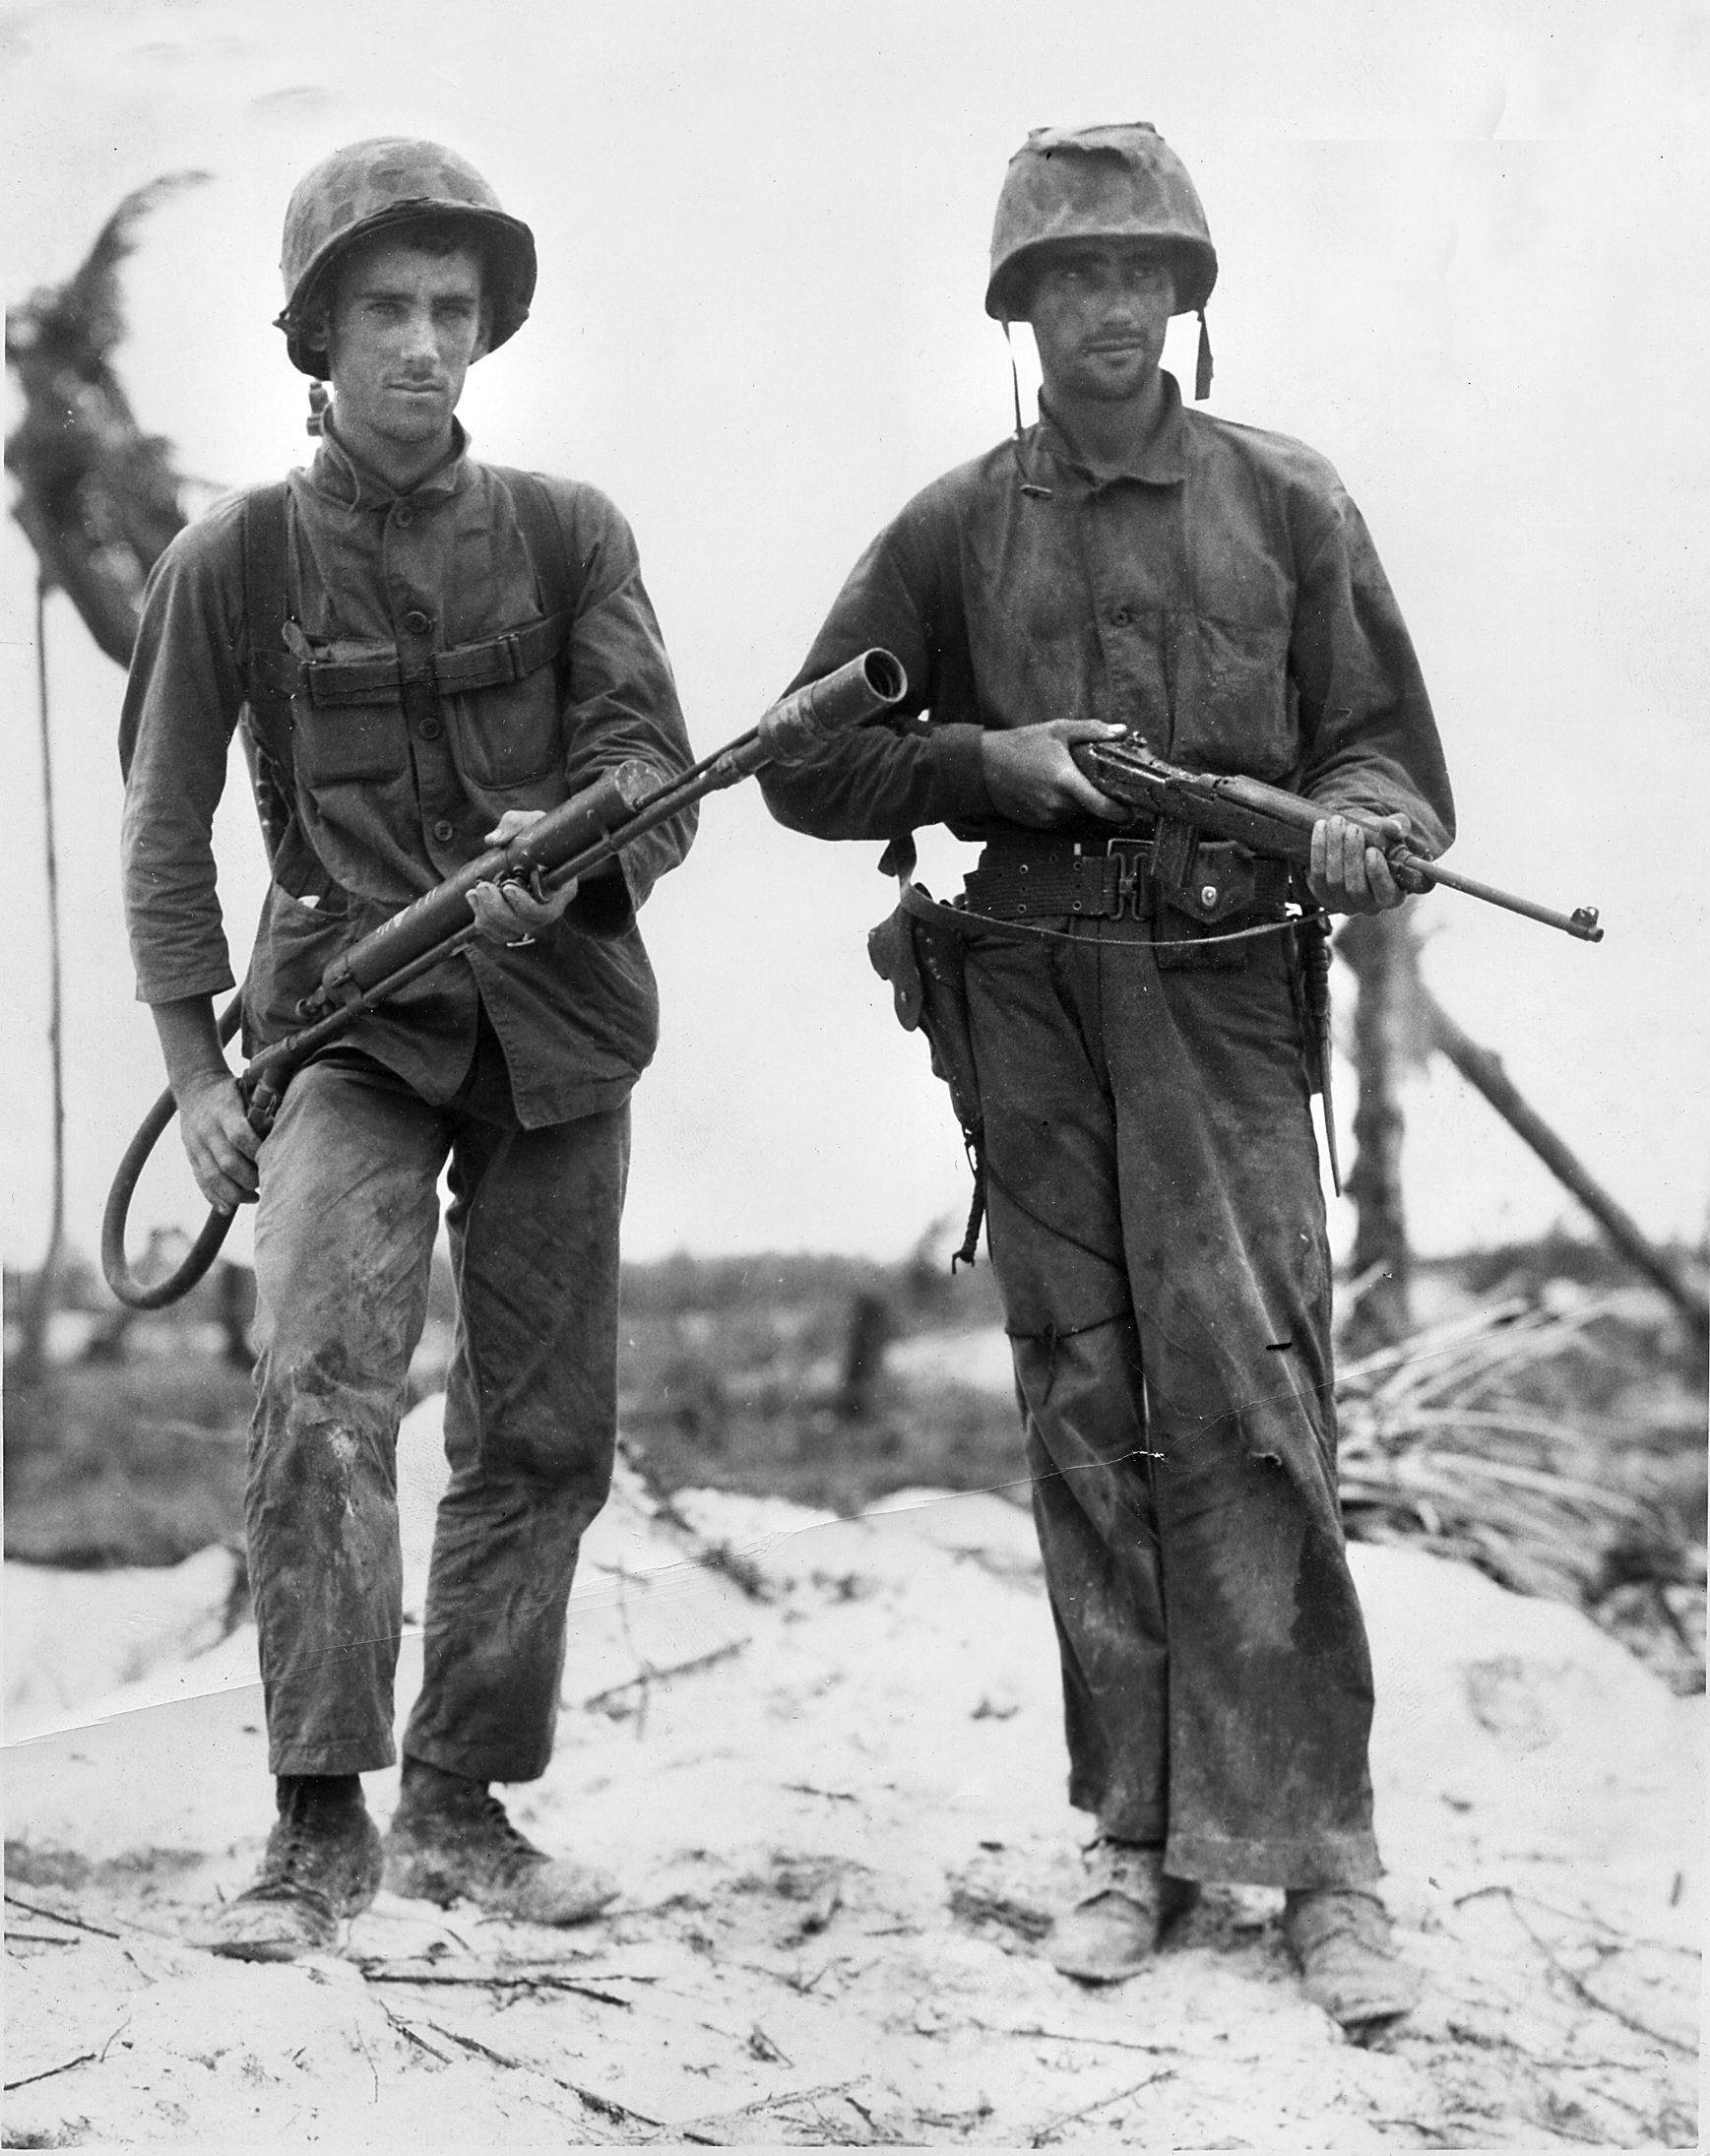 "US Marines Stanley A. Parks (left) and Randolph Peters pose for the camera with the M1A1 Flamethrower and a M1A carbine, Peleliu, 1944. Compare and contrast their overall appearance with that of cinema ""heroes"" of the 50s and 60s -- pressed dungarees, clean shaven faces, perfectly laced boots, and polished helmets. Reality vs make-believe."